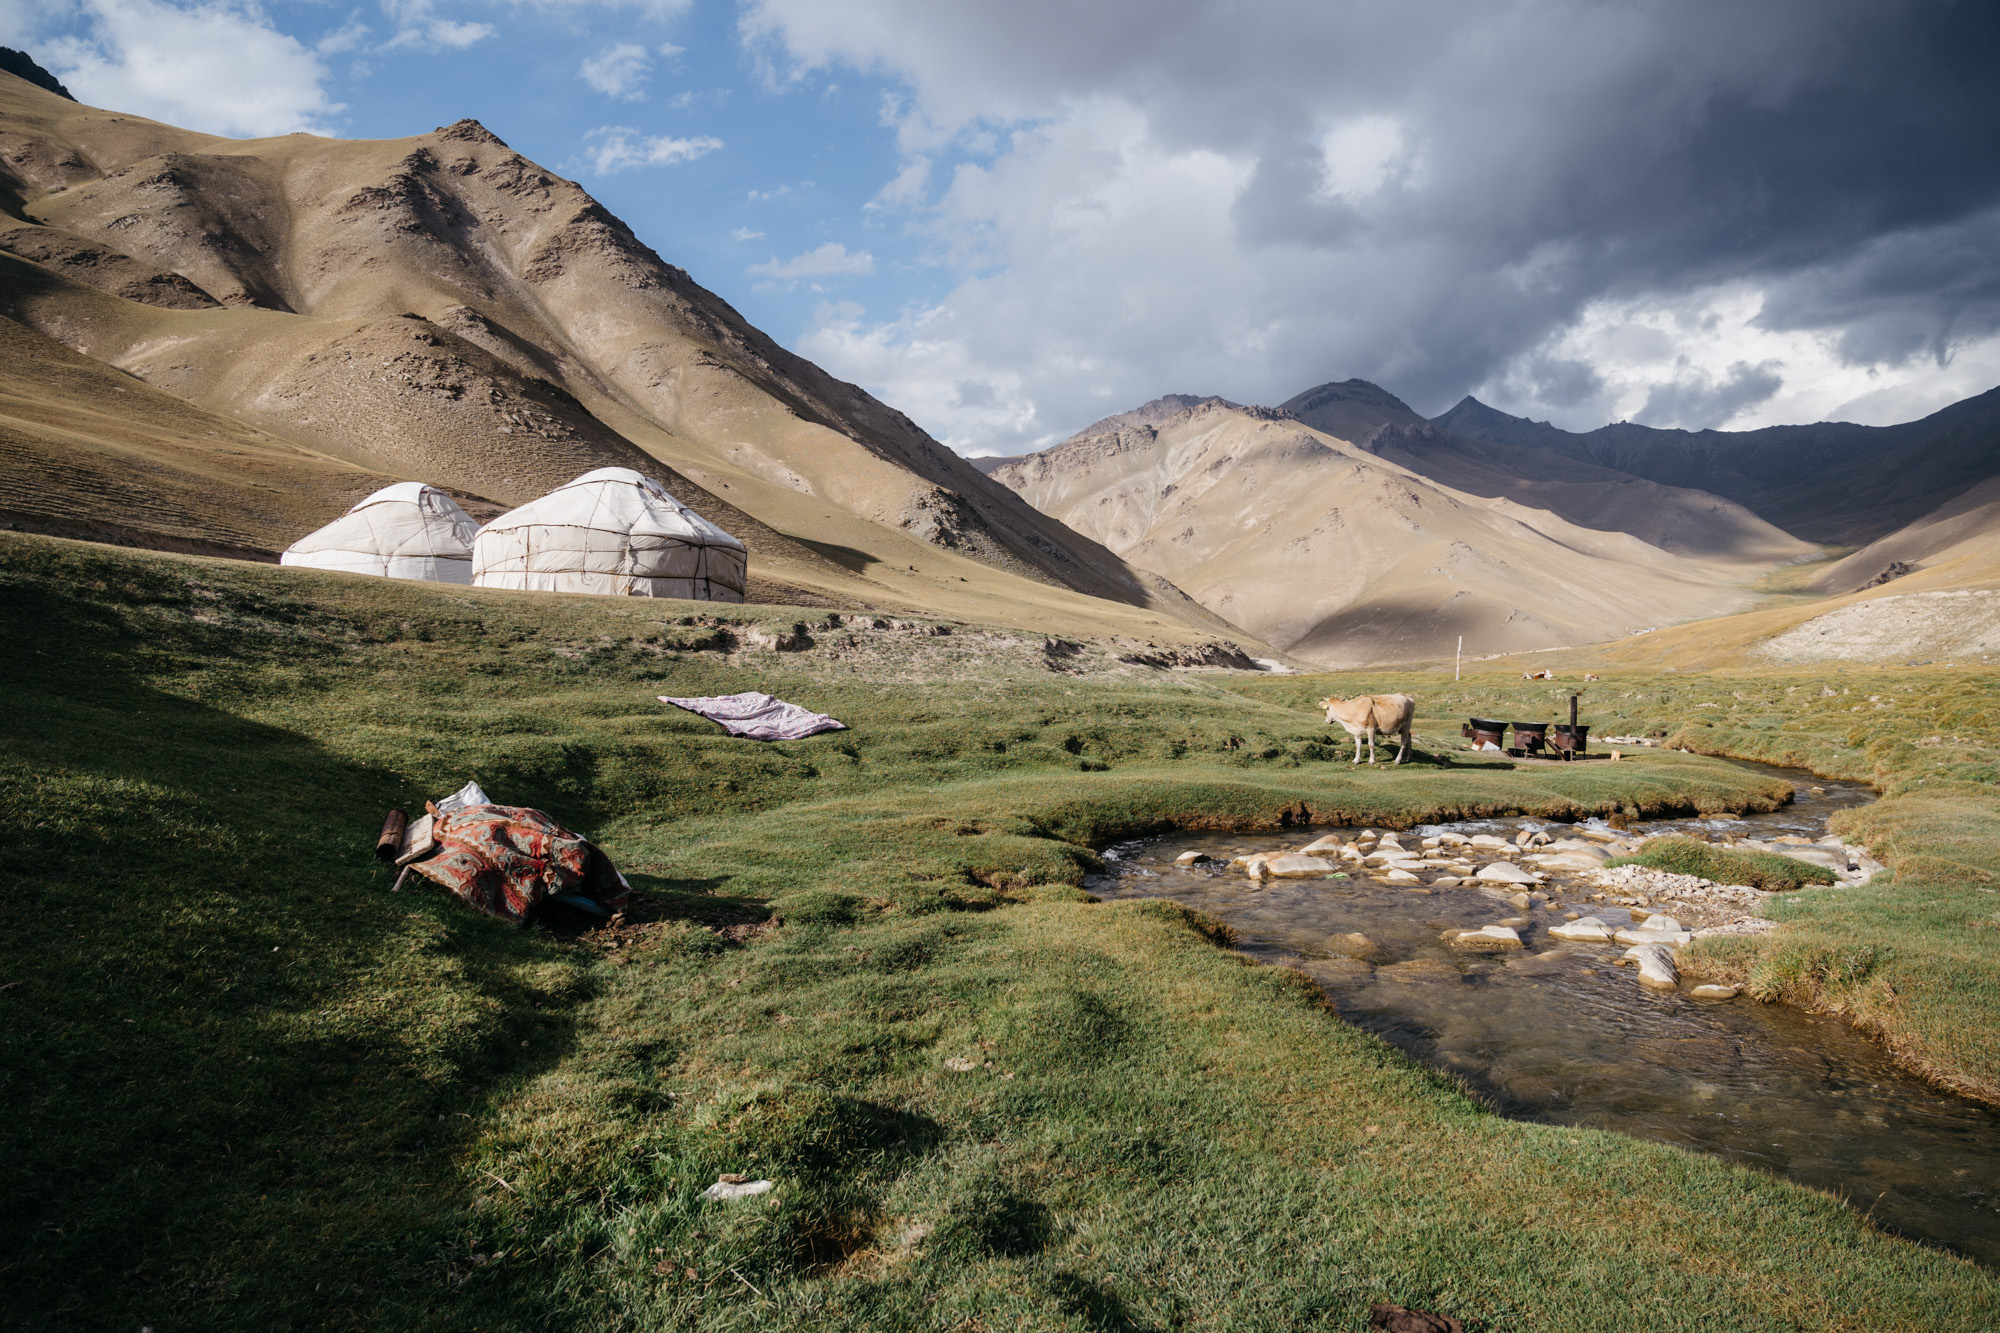 Some nearby yurts and cow by a stream.